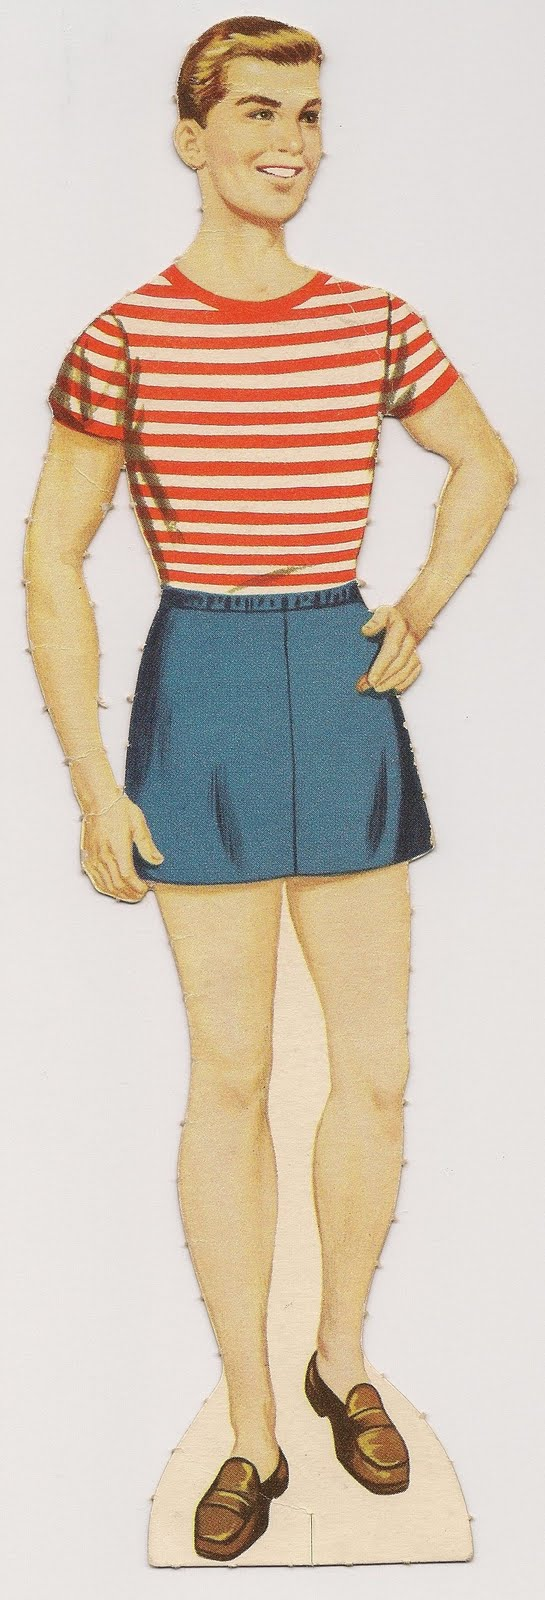 Gay male paper dolls